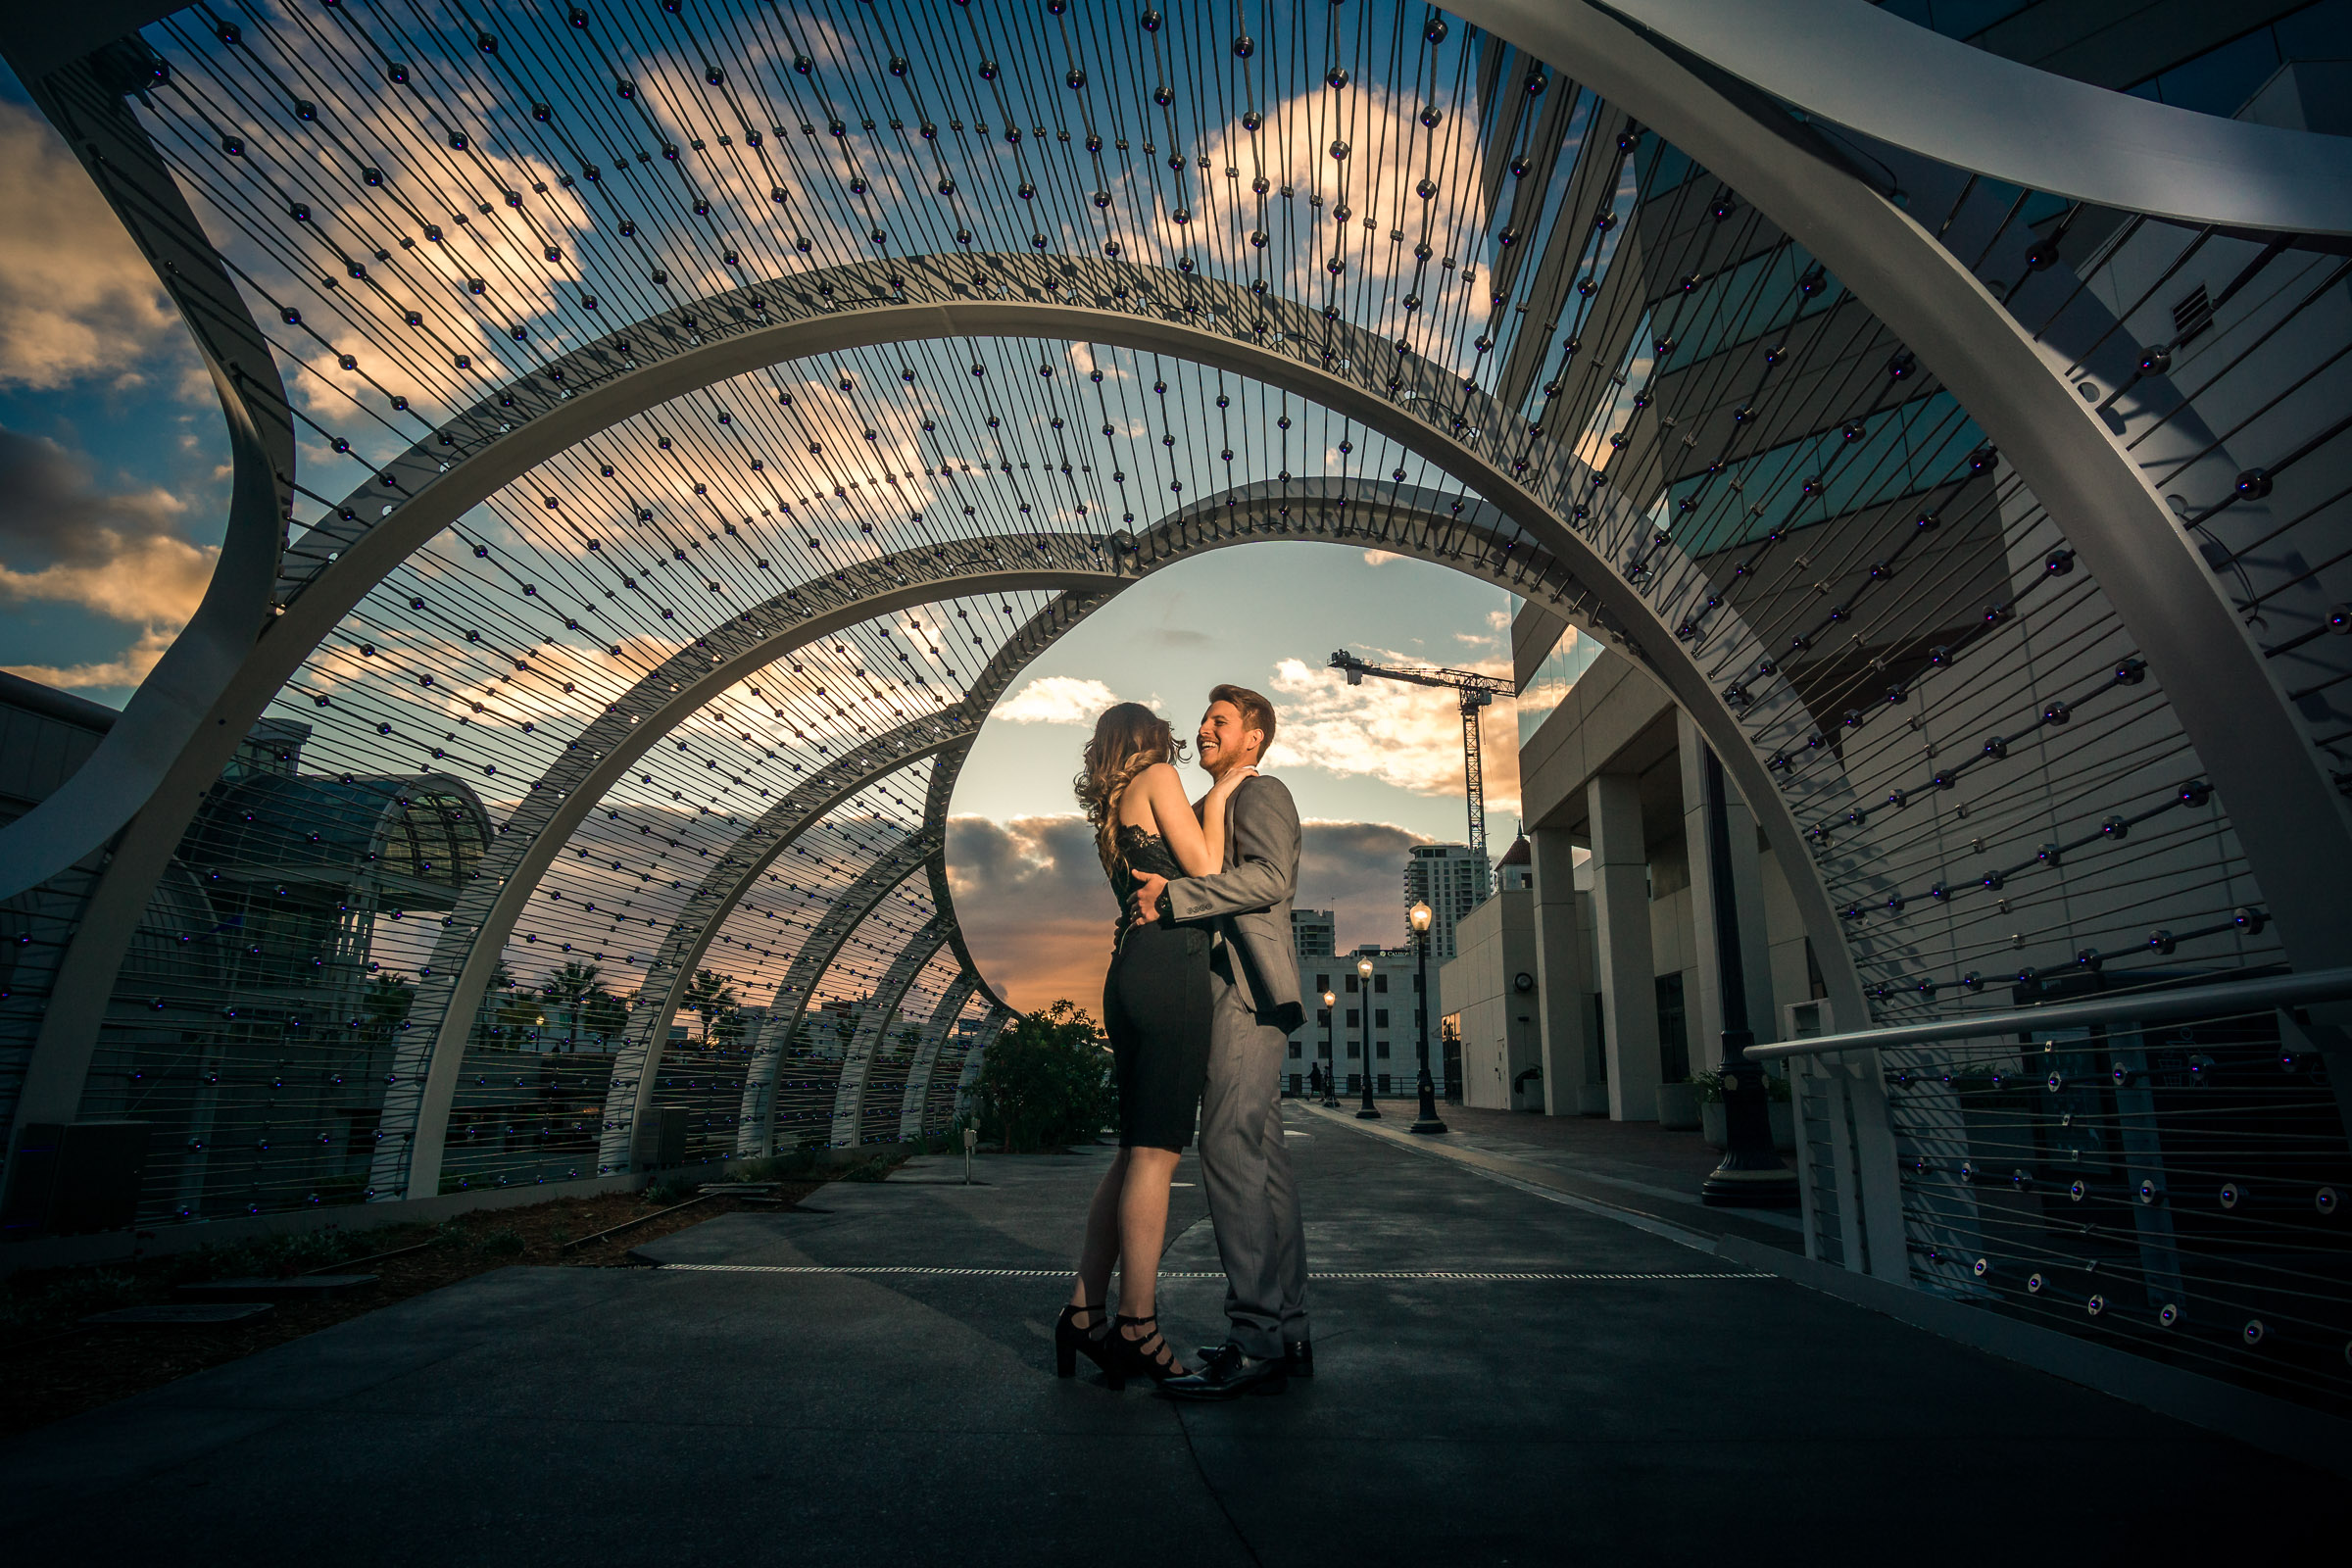 The Long Beach convention centers new rainbow Bridge Framing a couple kissing